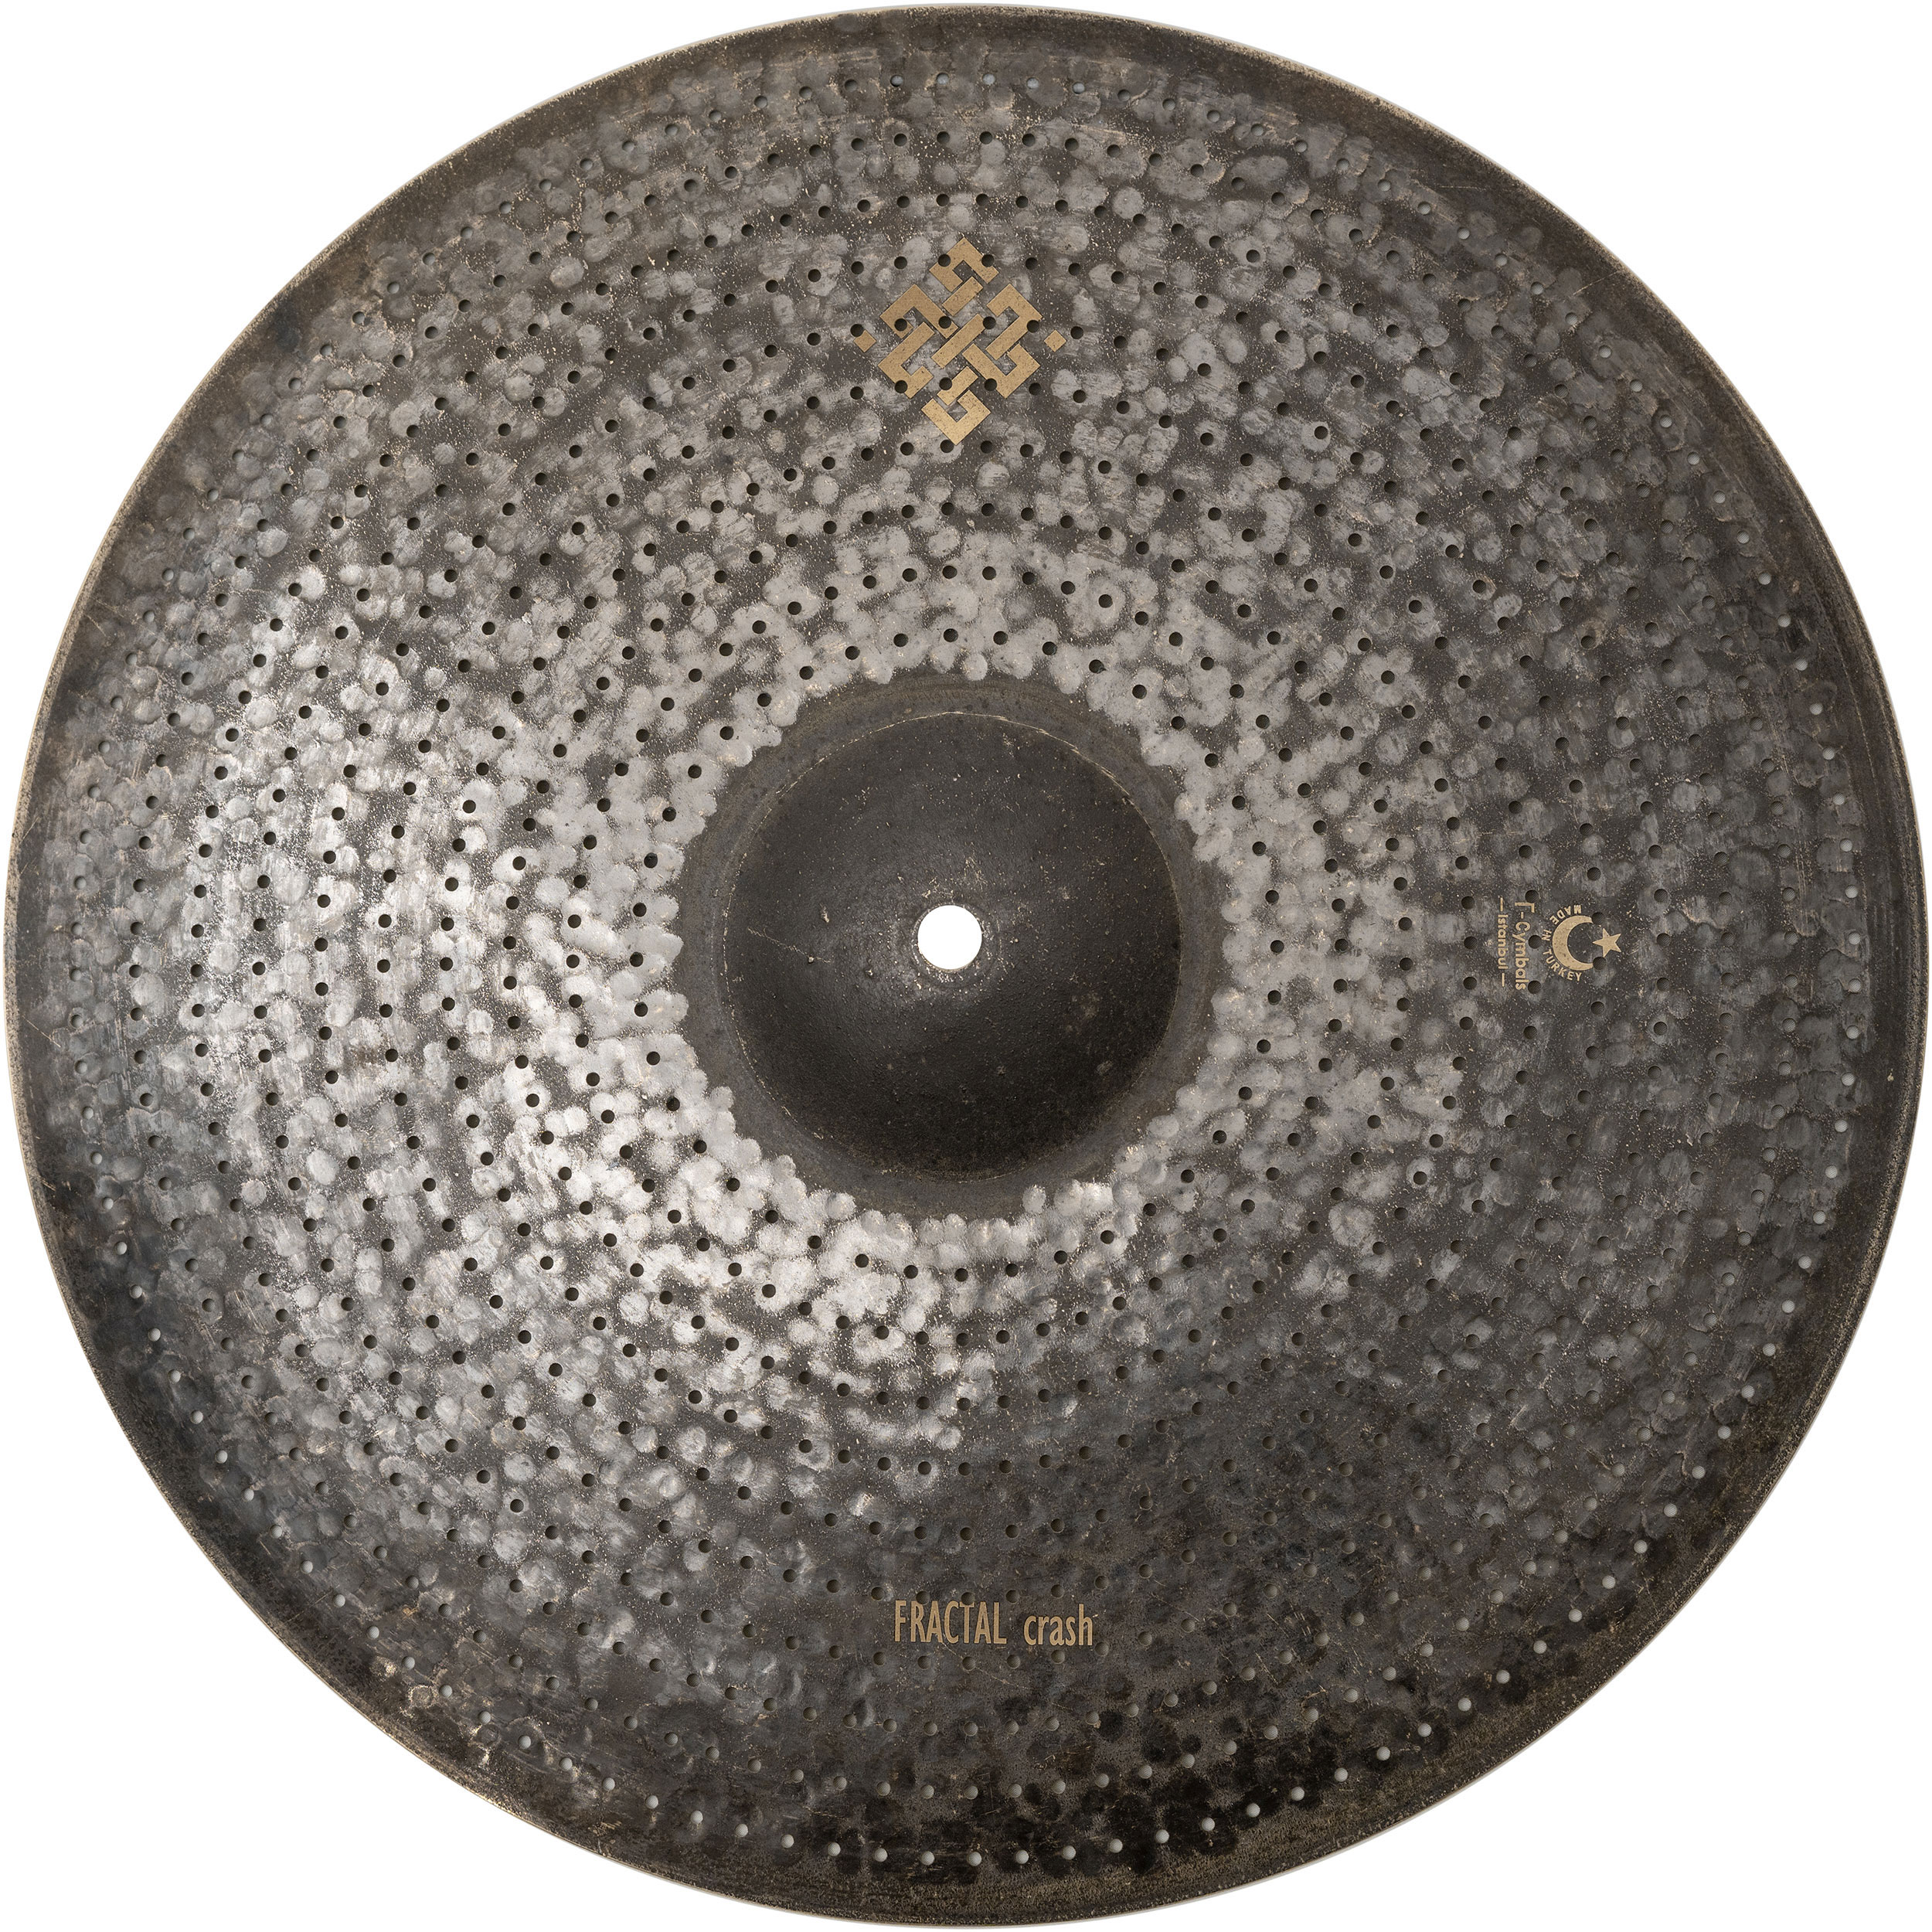 "T-Cymbals 17"" Air Fractal Crash Cymbal"